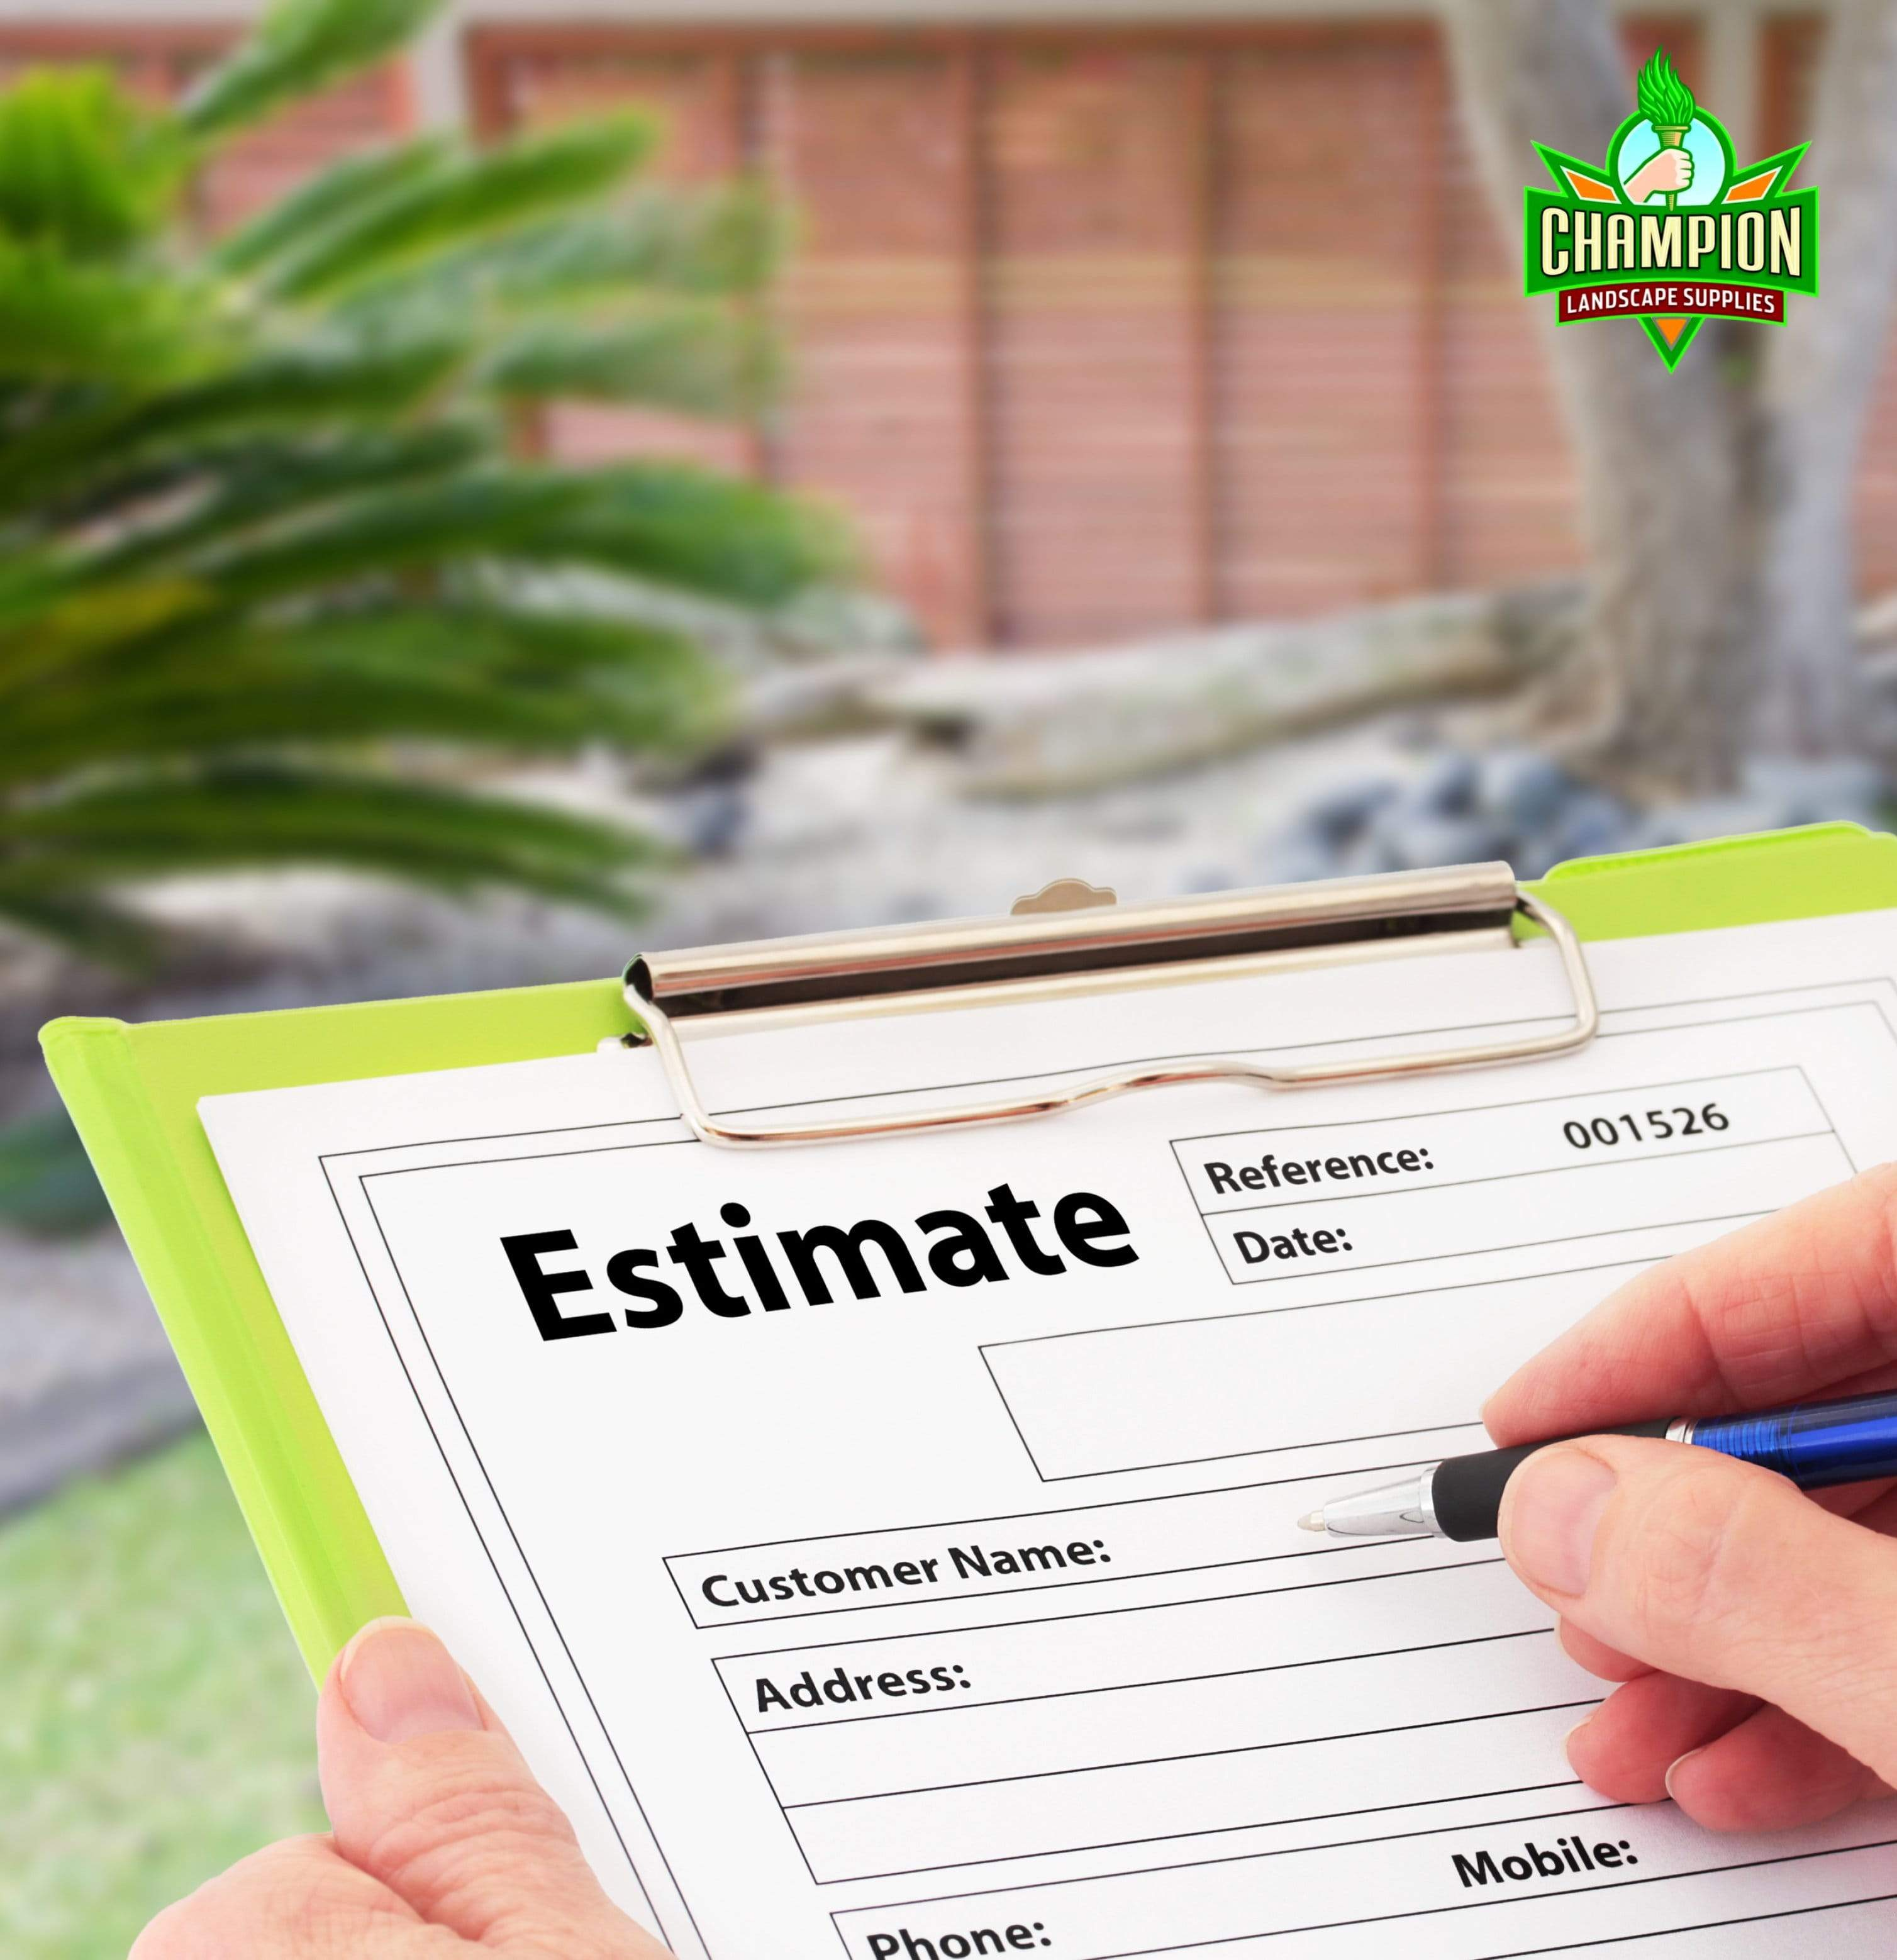 On-Site Estimate Request - Champion Landscape Supplies - On-Site Estimate Request